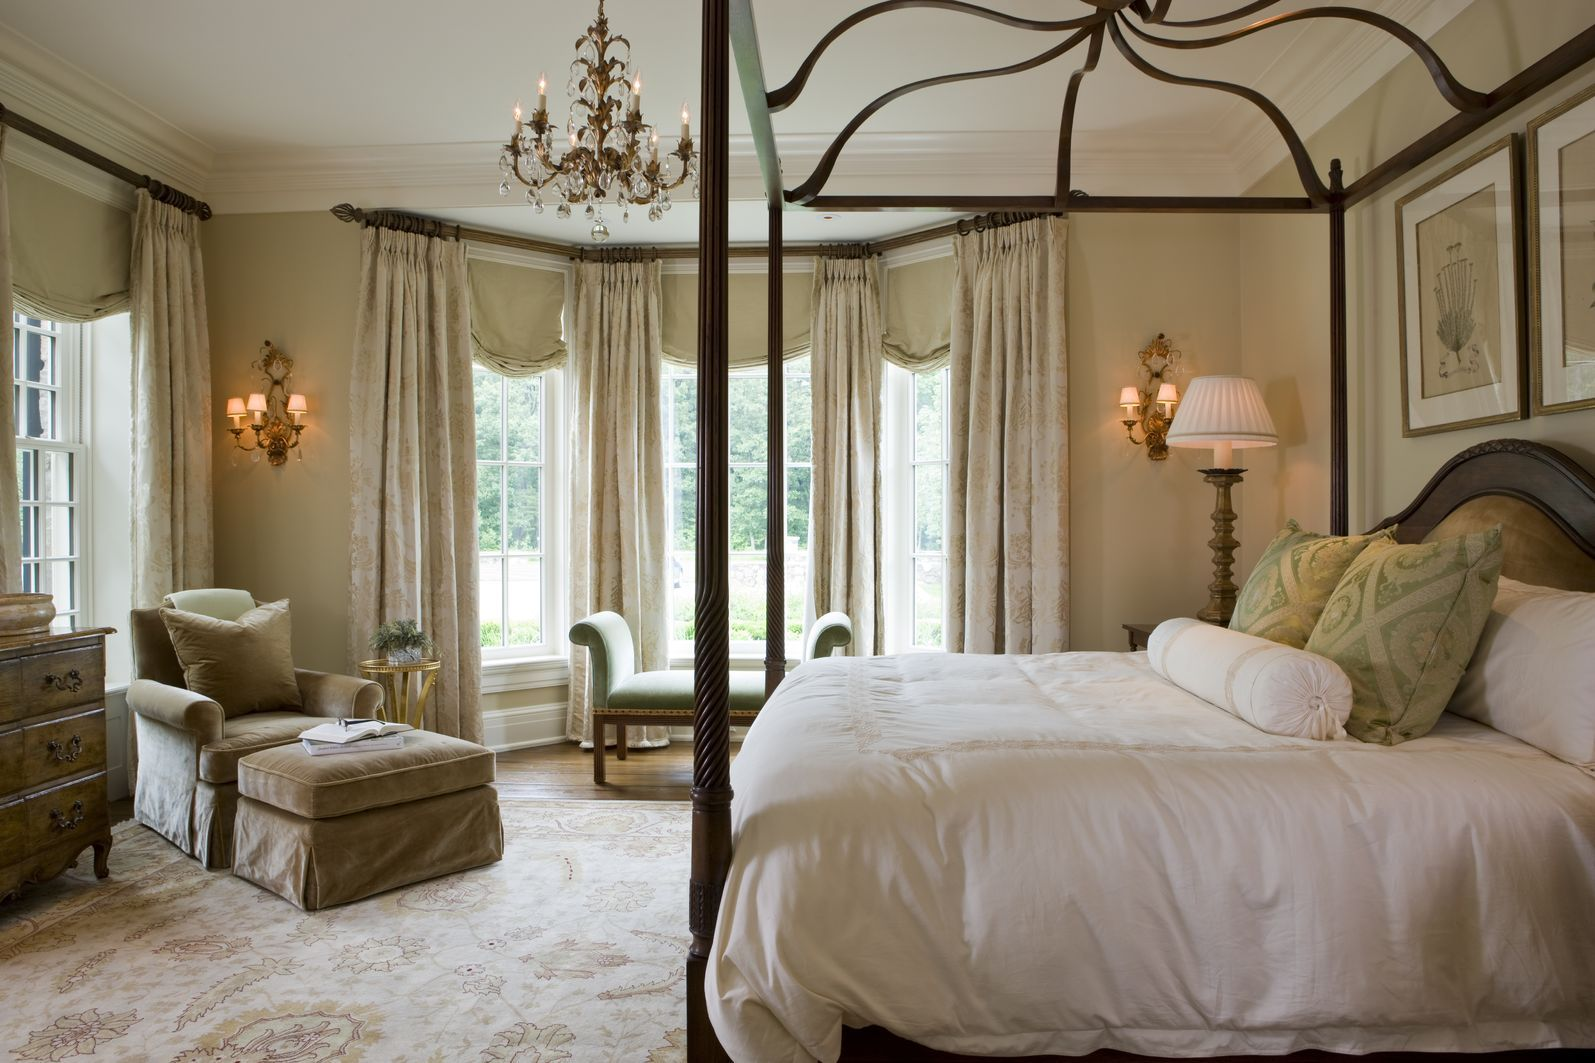 Window decor for bedroom  weston georgian manor home  traditional  bedroom  images by slc